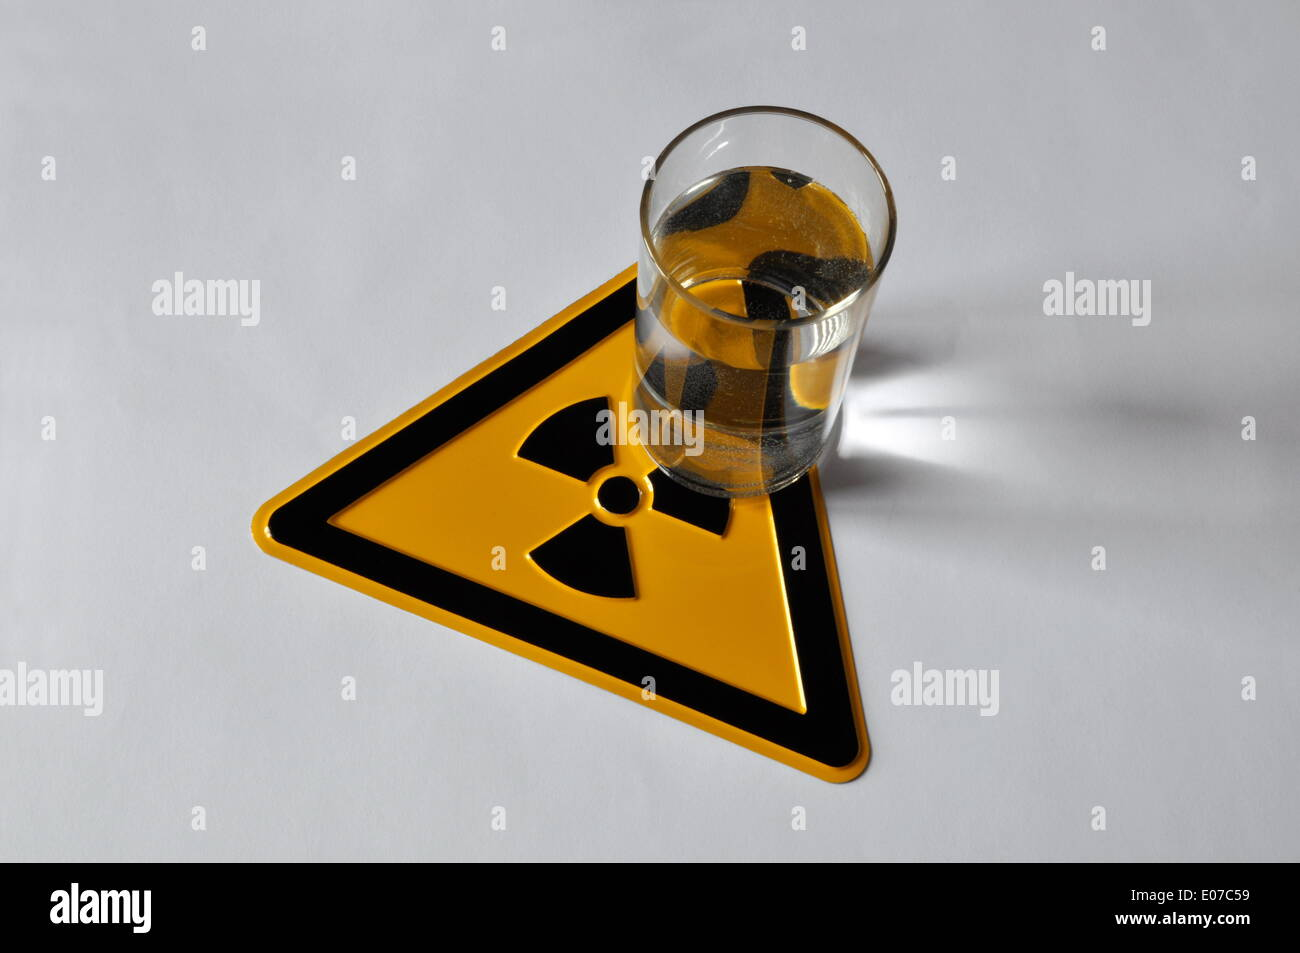 (ILLUSTRATION) A glass of water stands on a radioactivity warning sign in Germany, 03 April 2013. Photo: Berliner Stock Photo